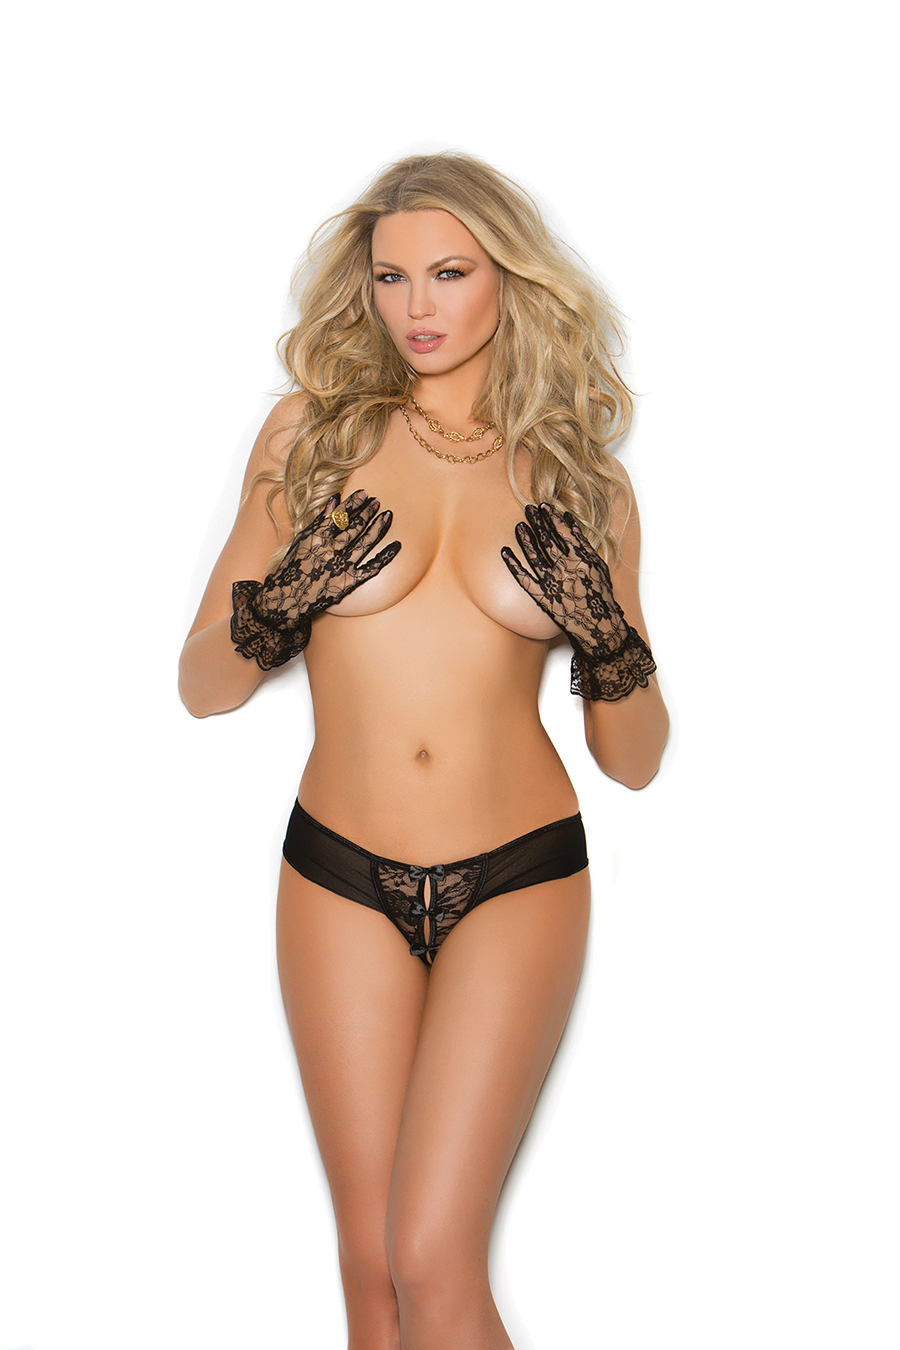 601302a13e7 2488-lace-and-mesh-crotchless-panty-8.jpg